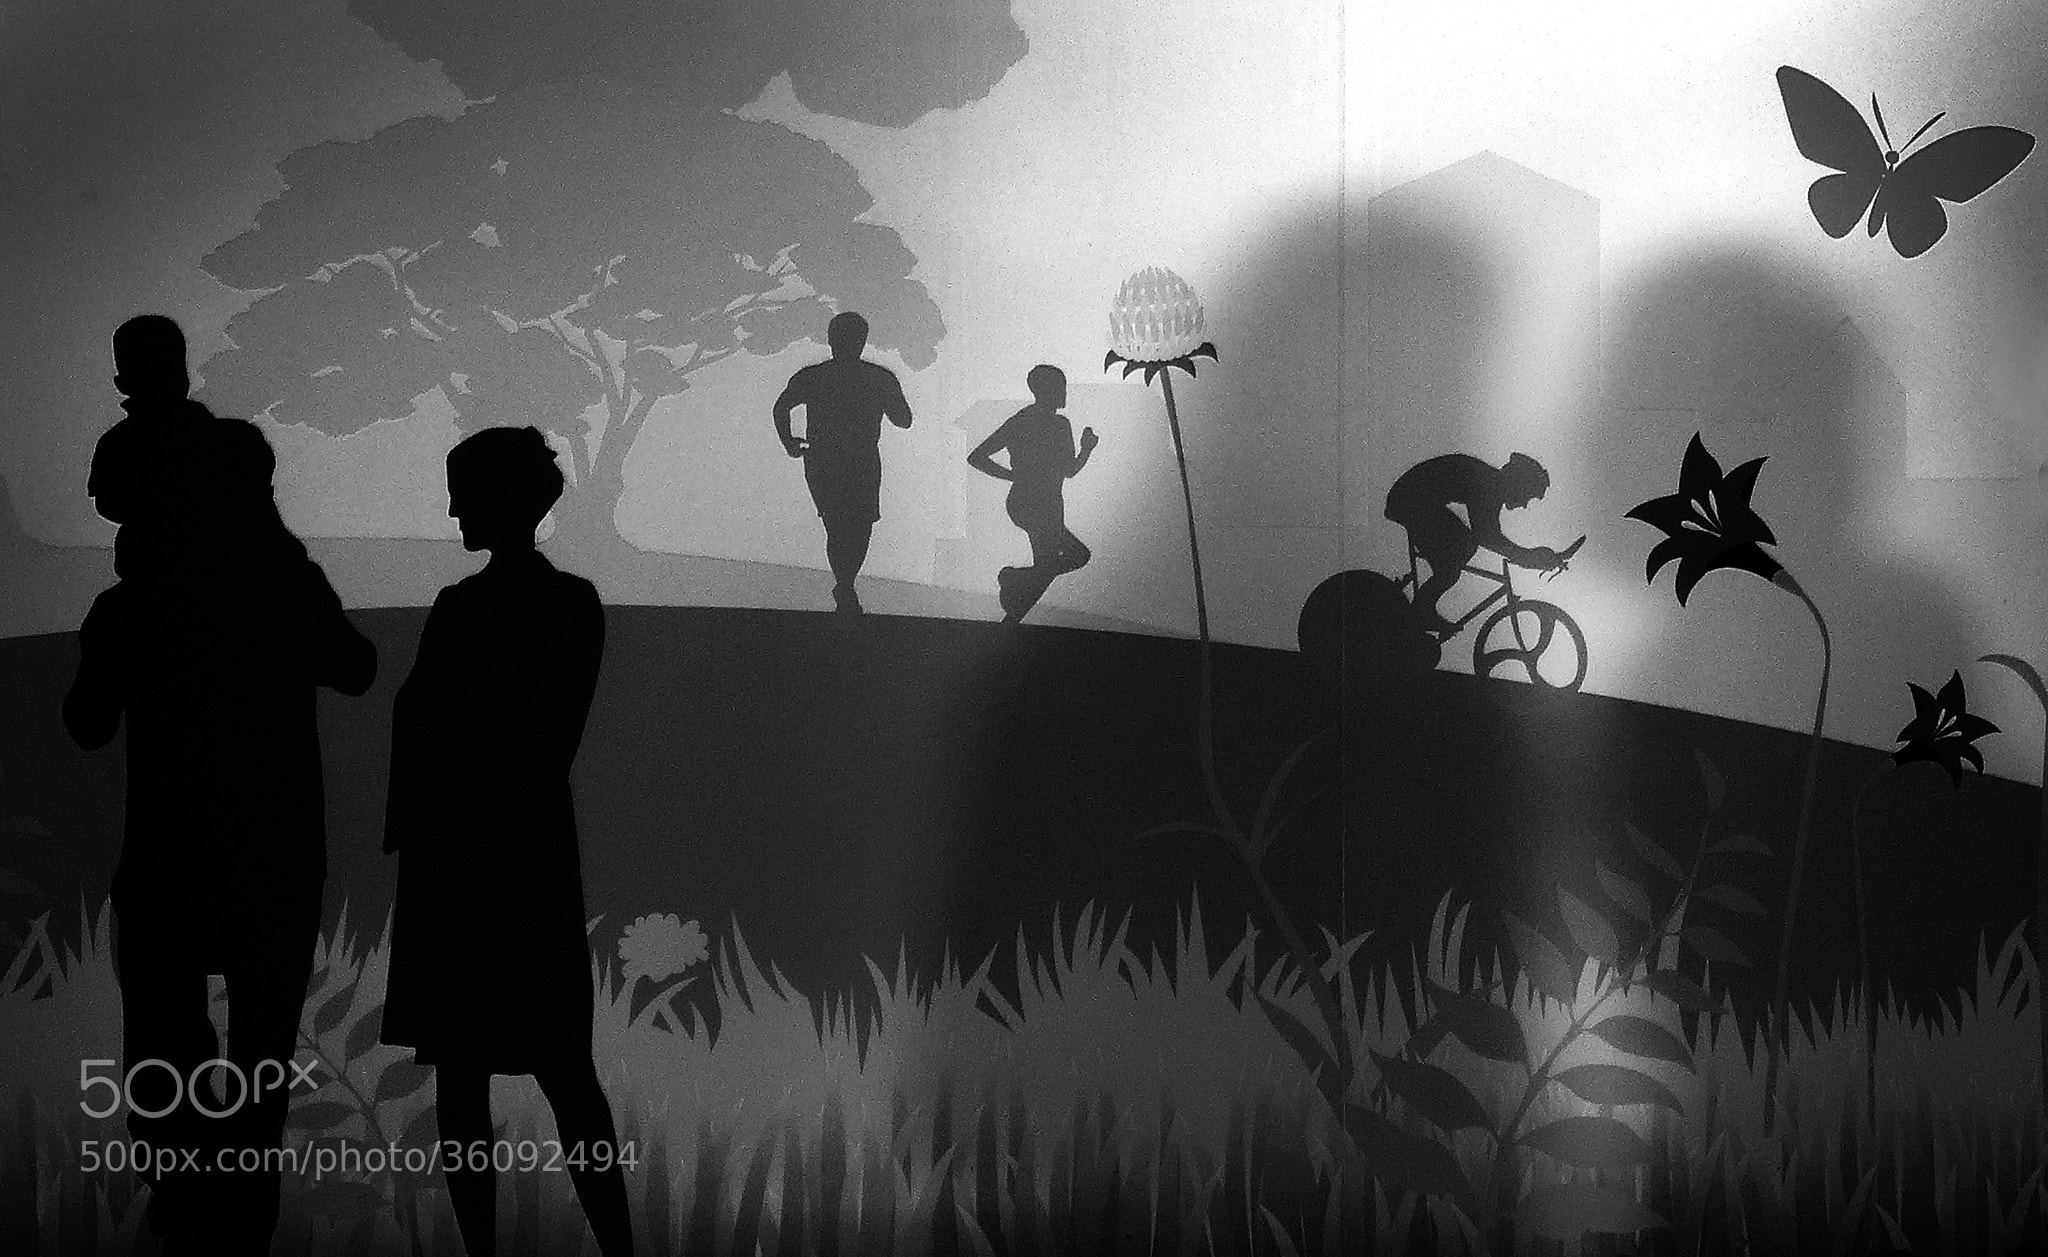 Photograph shadow and Silohuette by Henry Wong on 500px